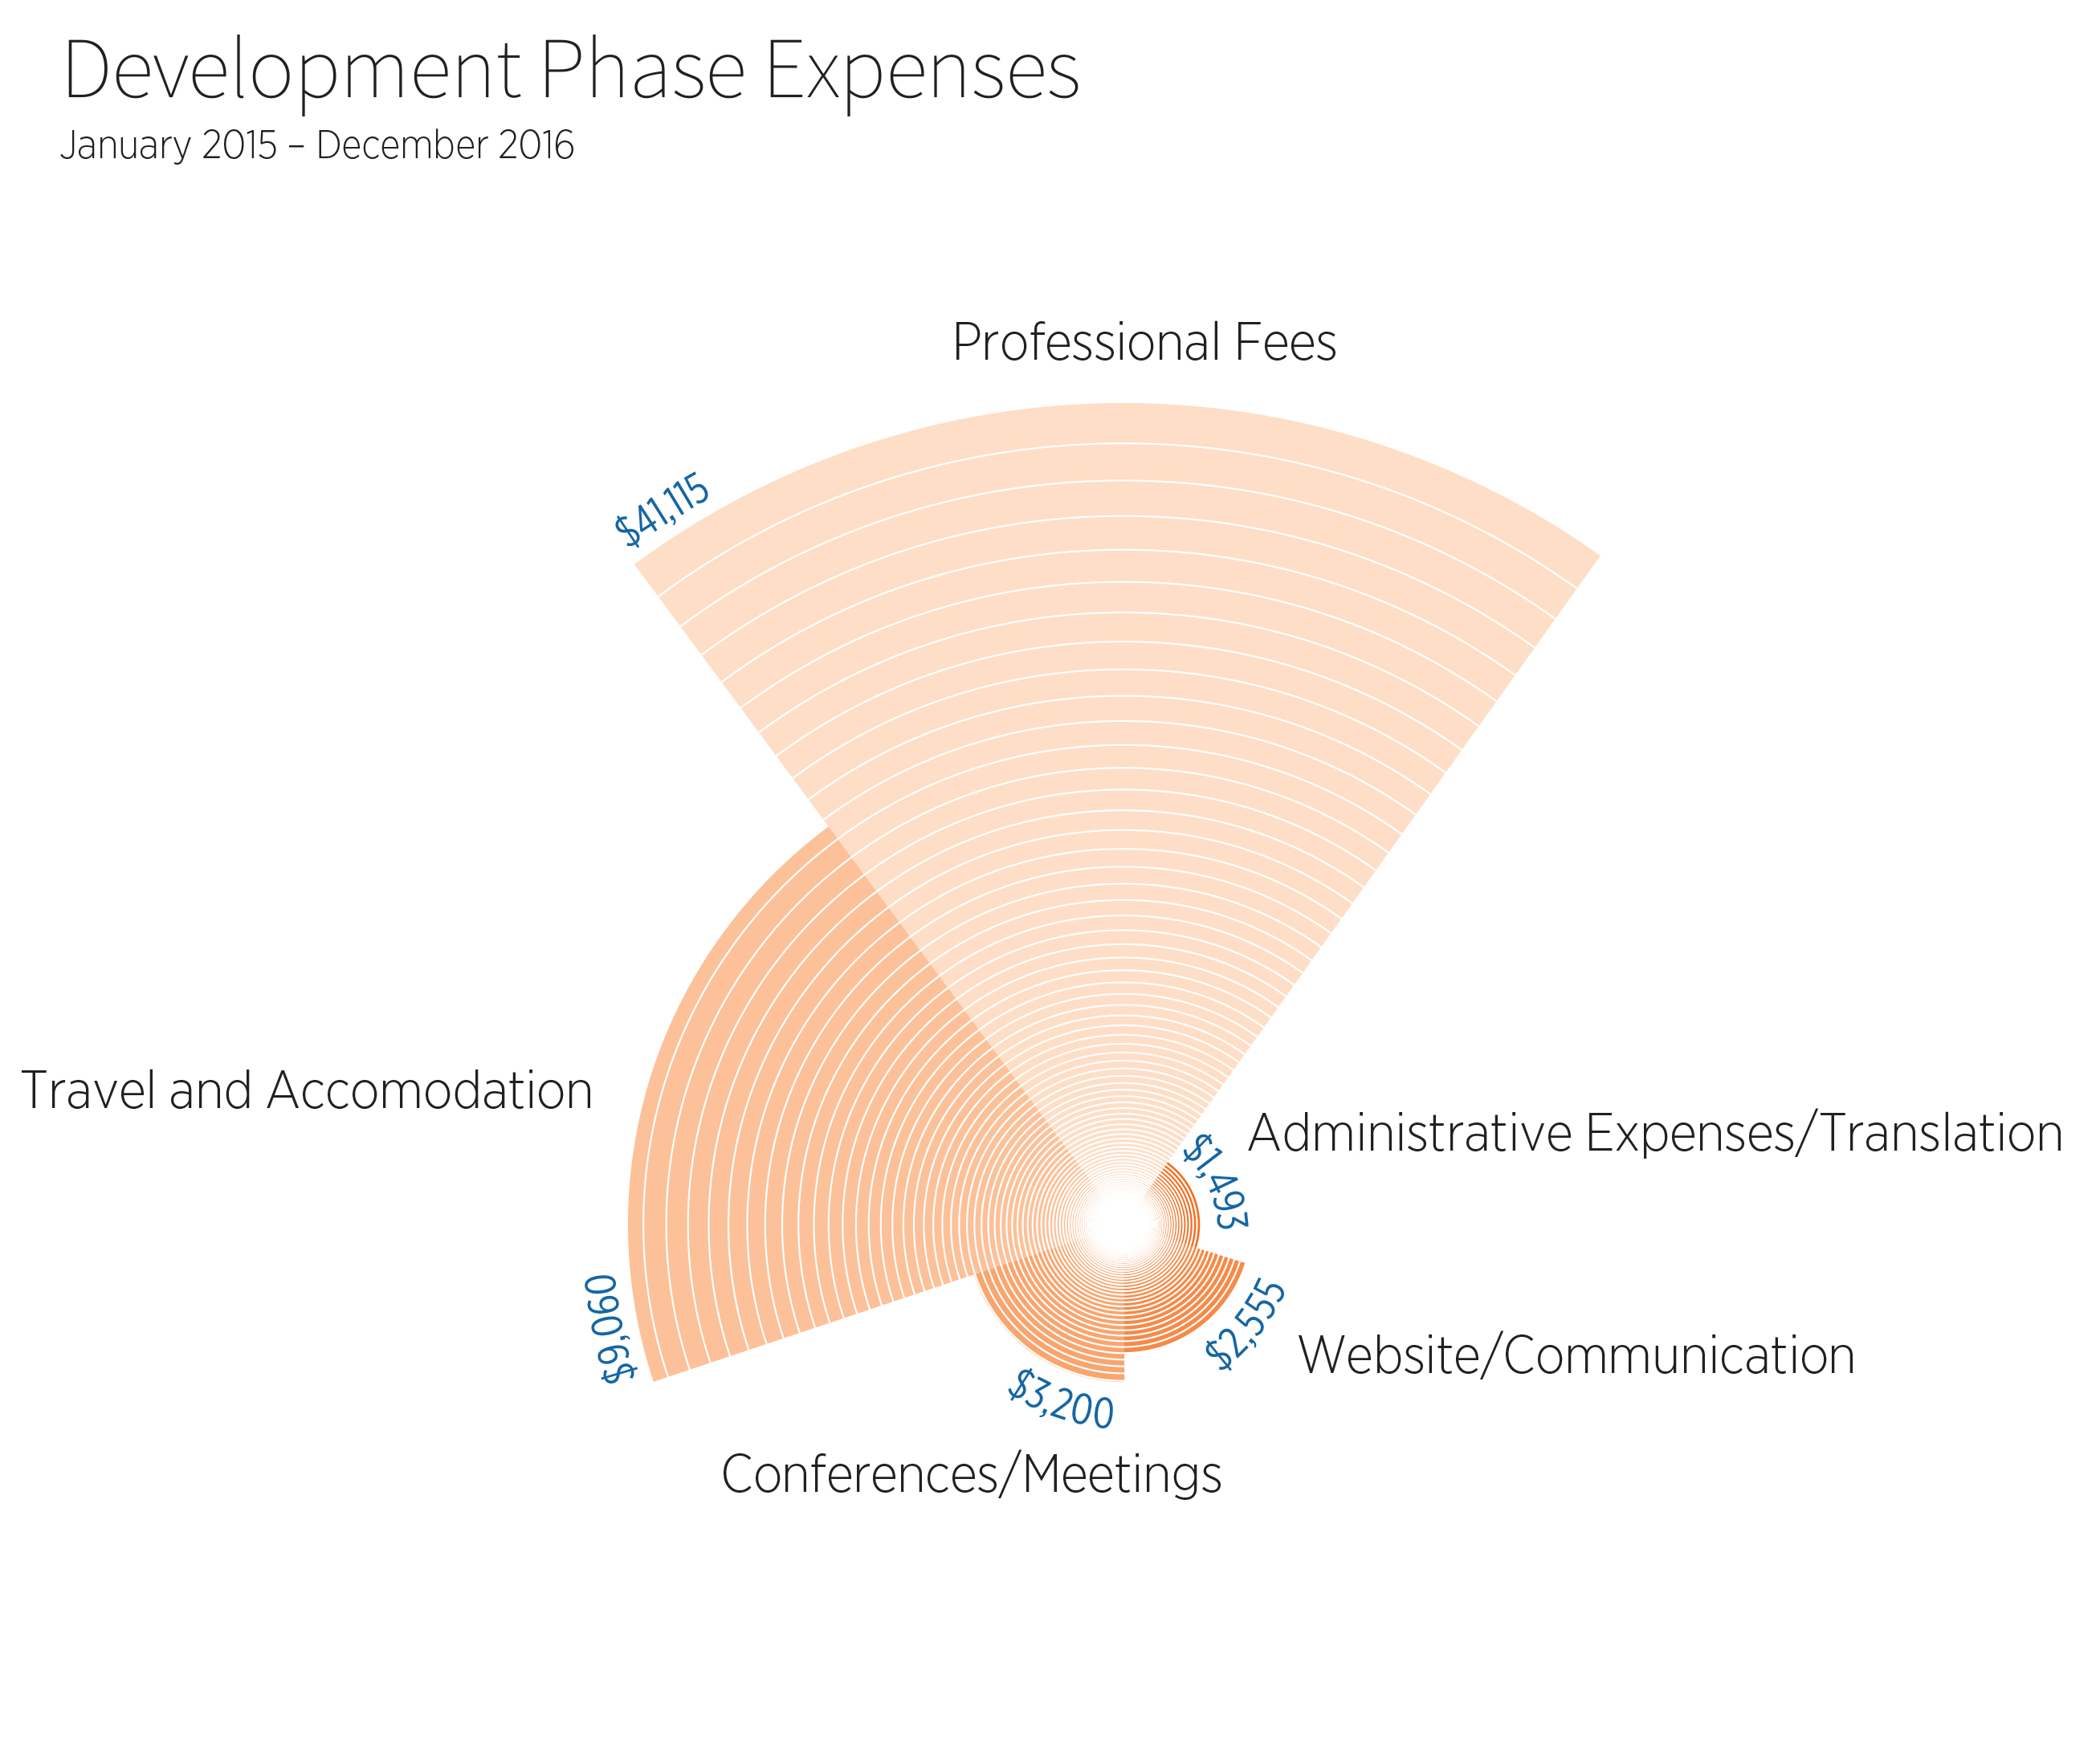 Development Phase Expenses